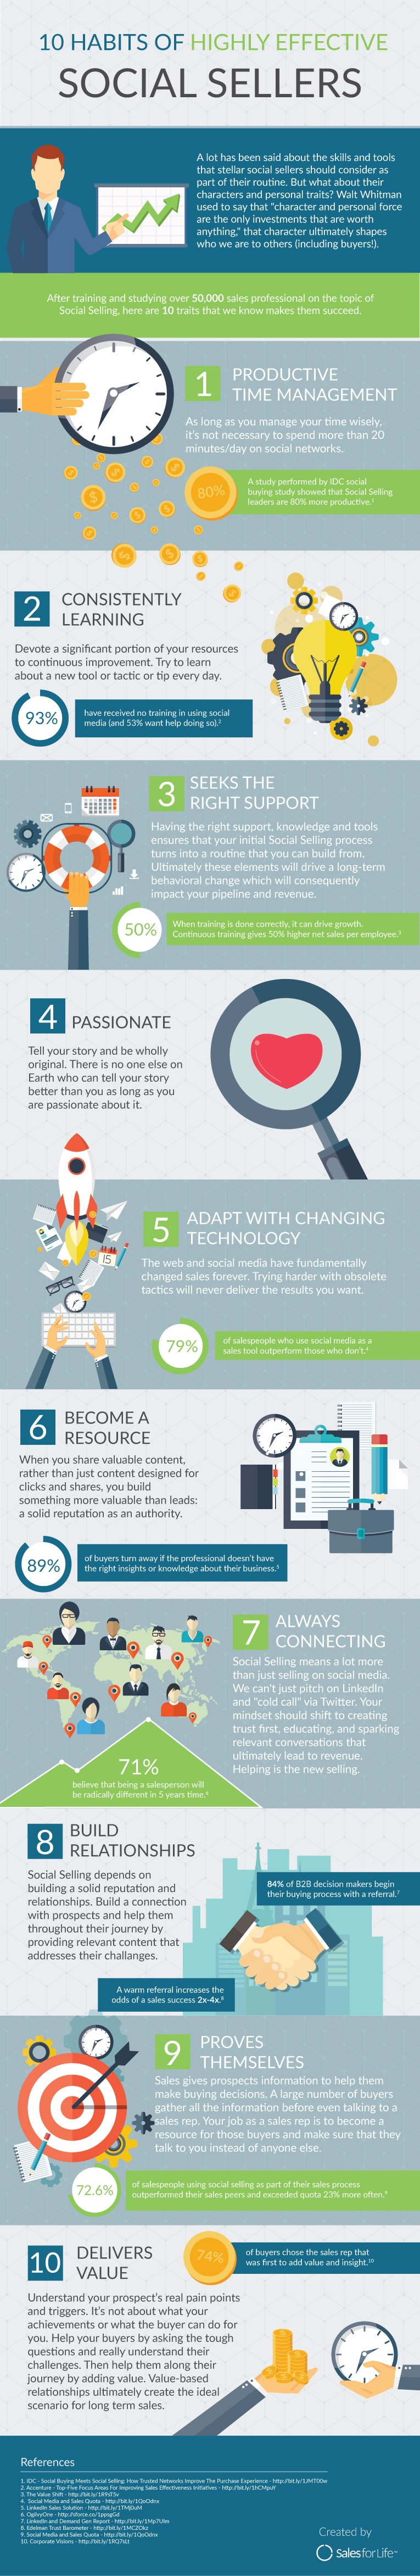 10-habits-highly-effective-social-sellers-infographic1.jpg